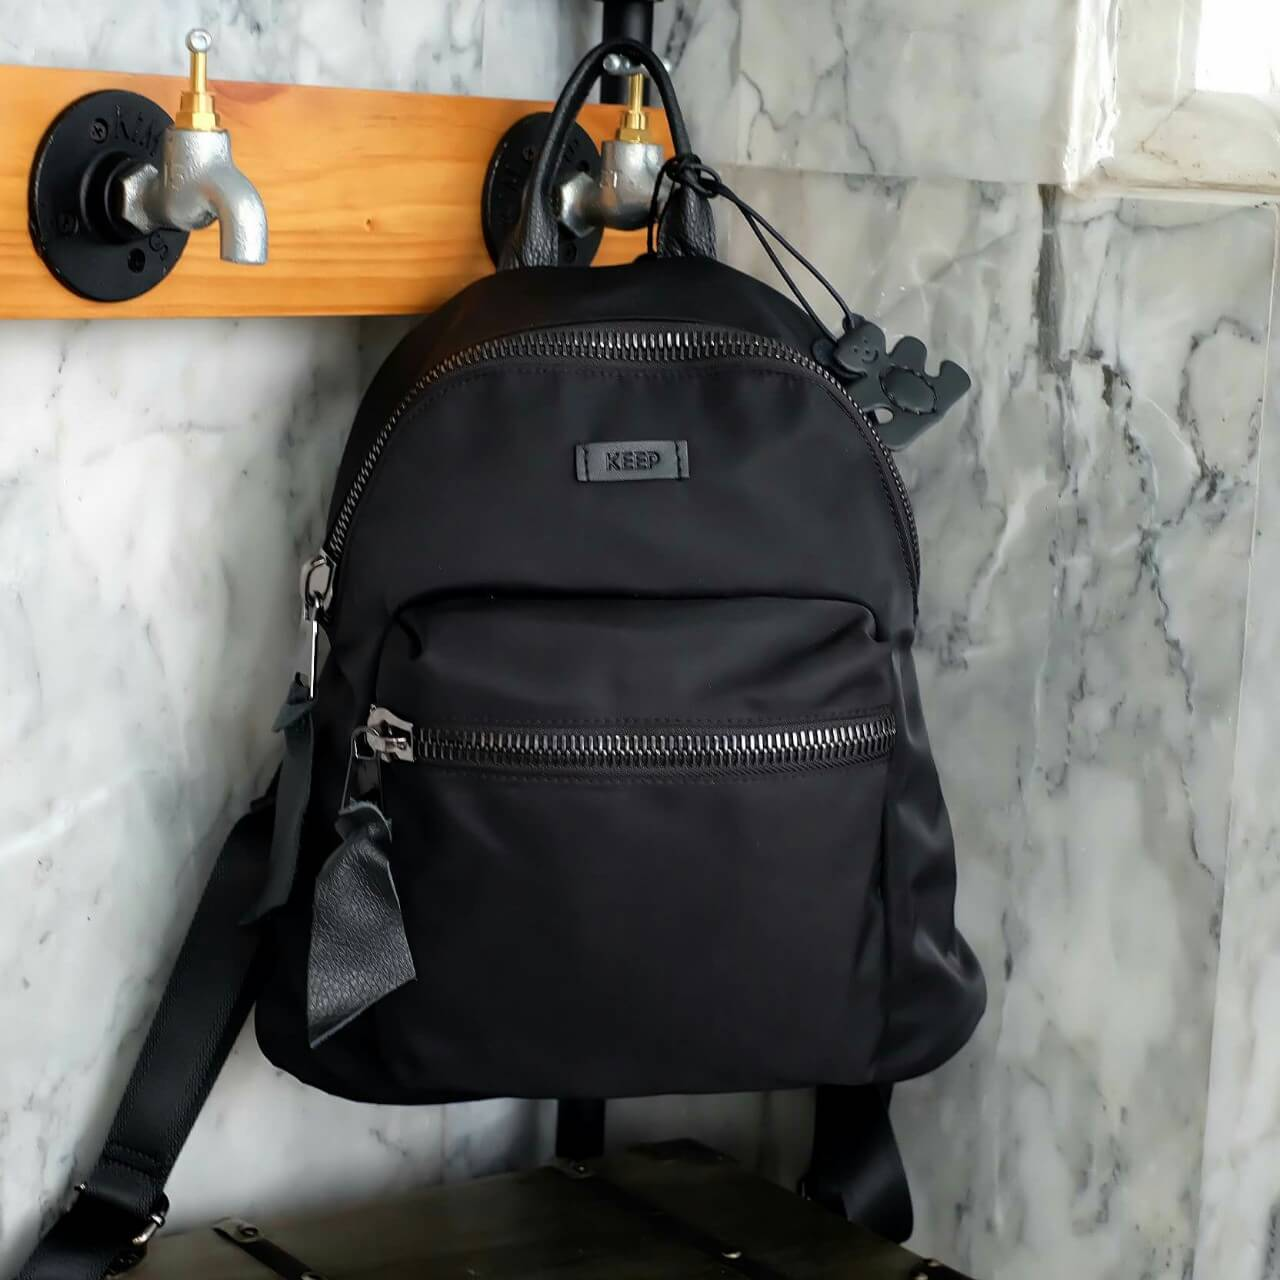 KEEP nylon backpack